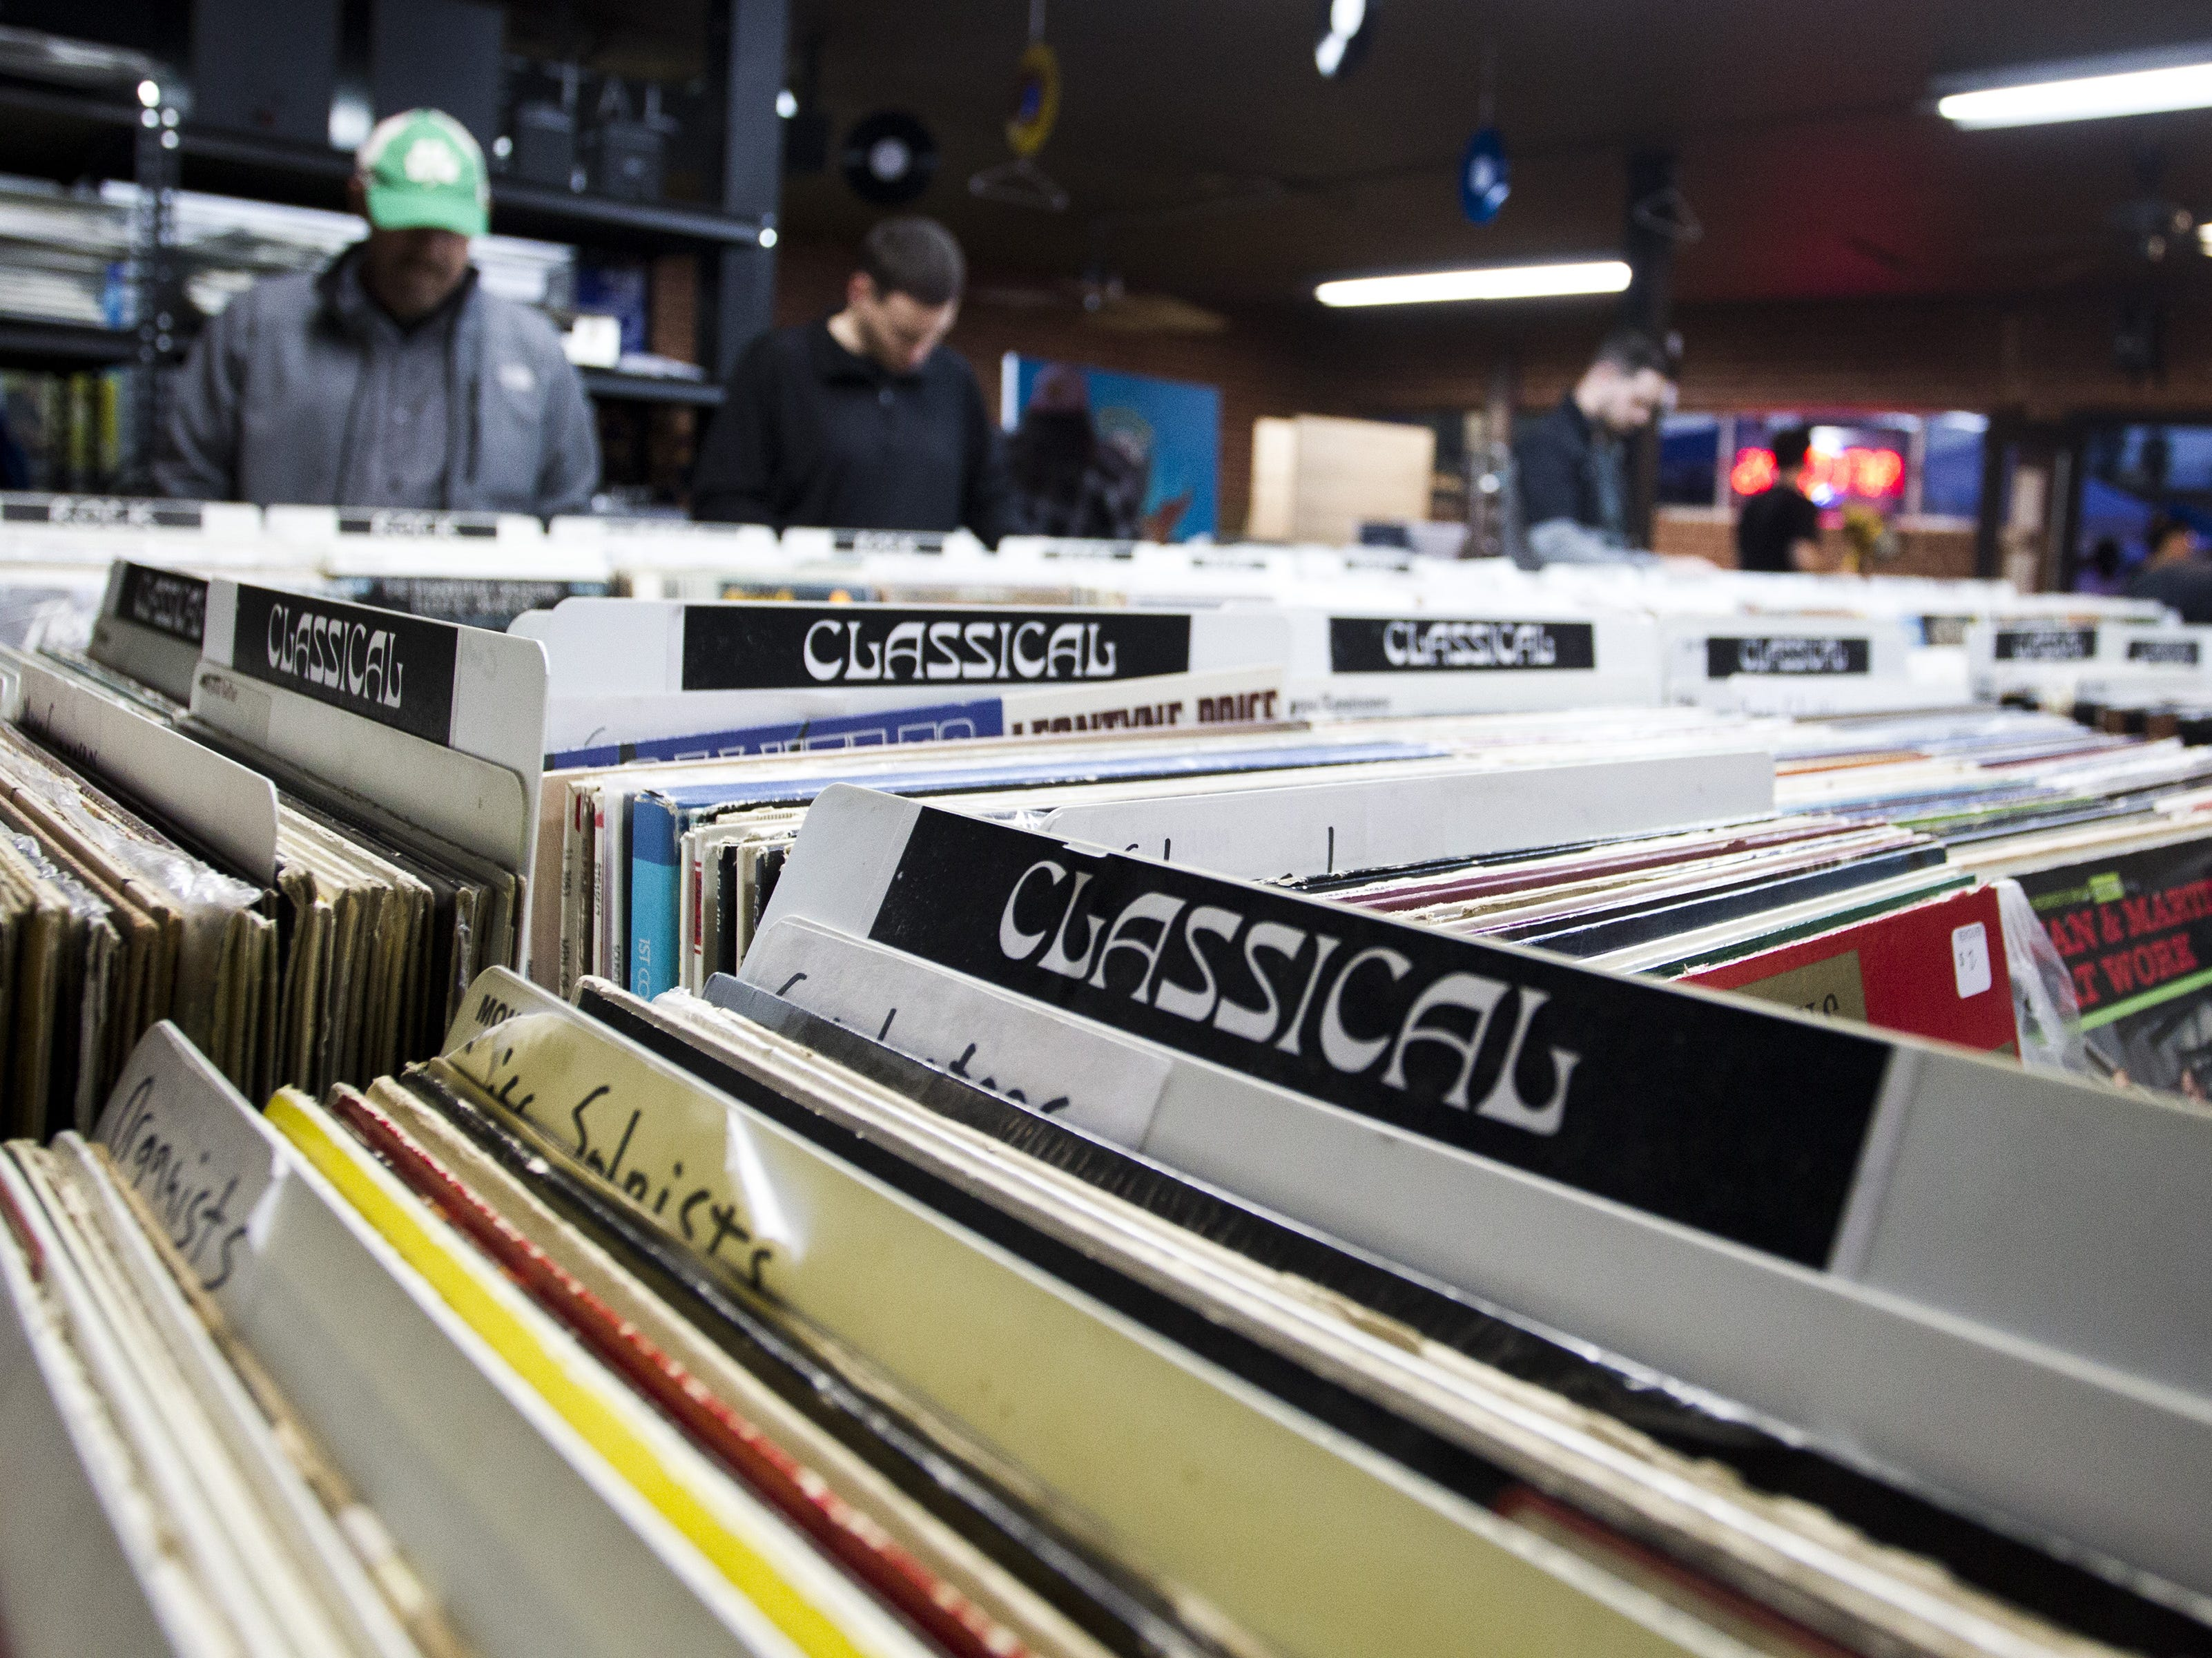 Music lovers sort through albums at Revolver Records in downtown Phoenix on First Friday. Revolver Records has all merchandise at 50 percent off and will be closing its doors Feb. 10.